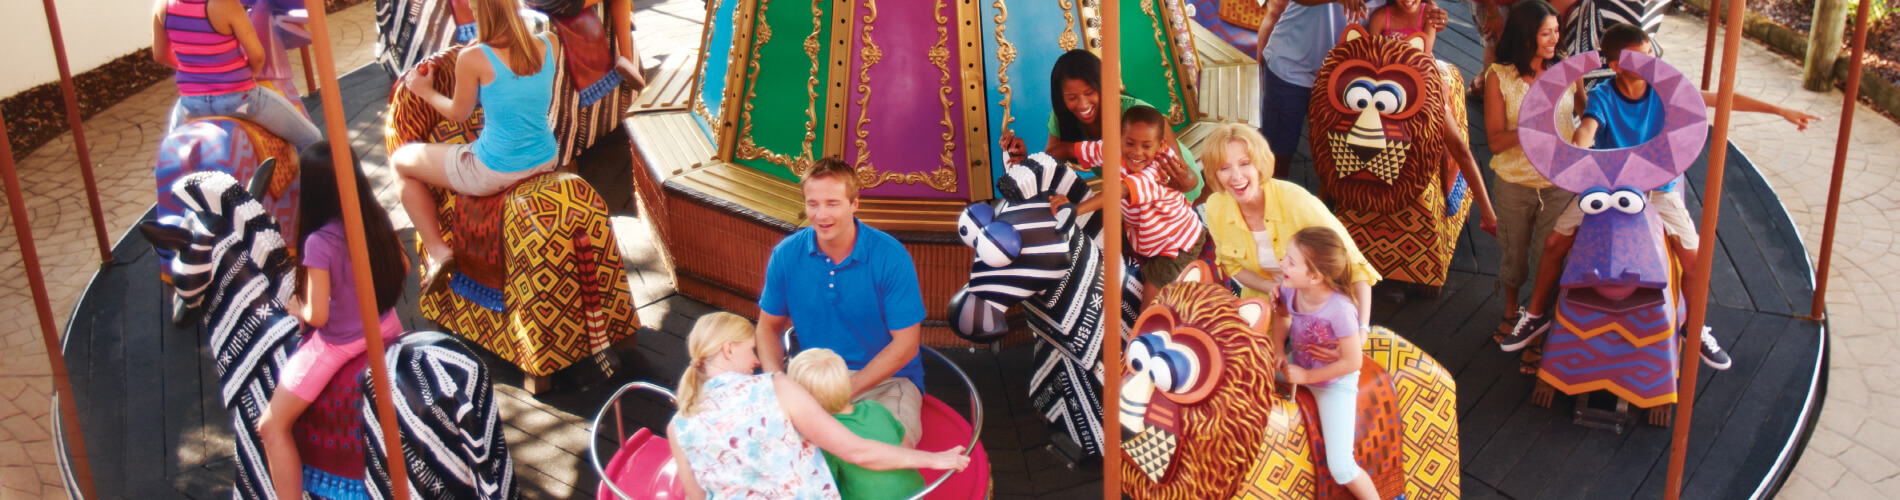 Young kids and parents alike enjoy riding a carousel at Busch Gardens Tampa Bay animal theme park, located in Florida.